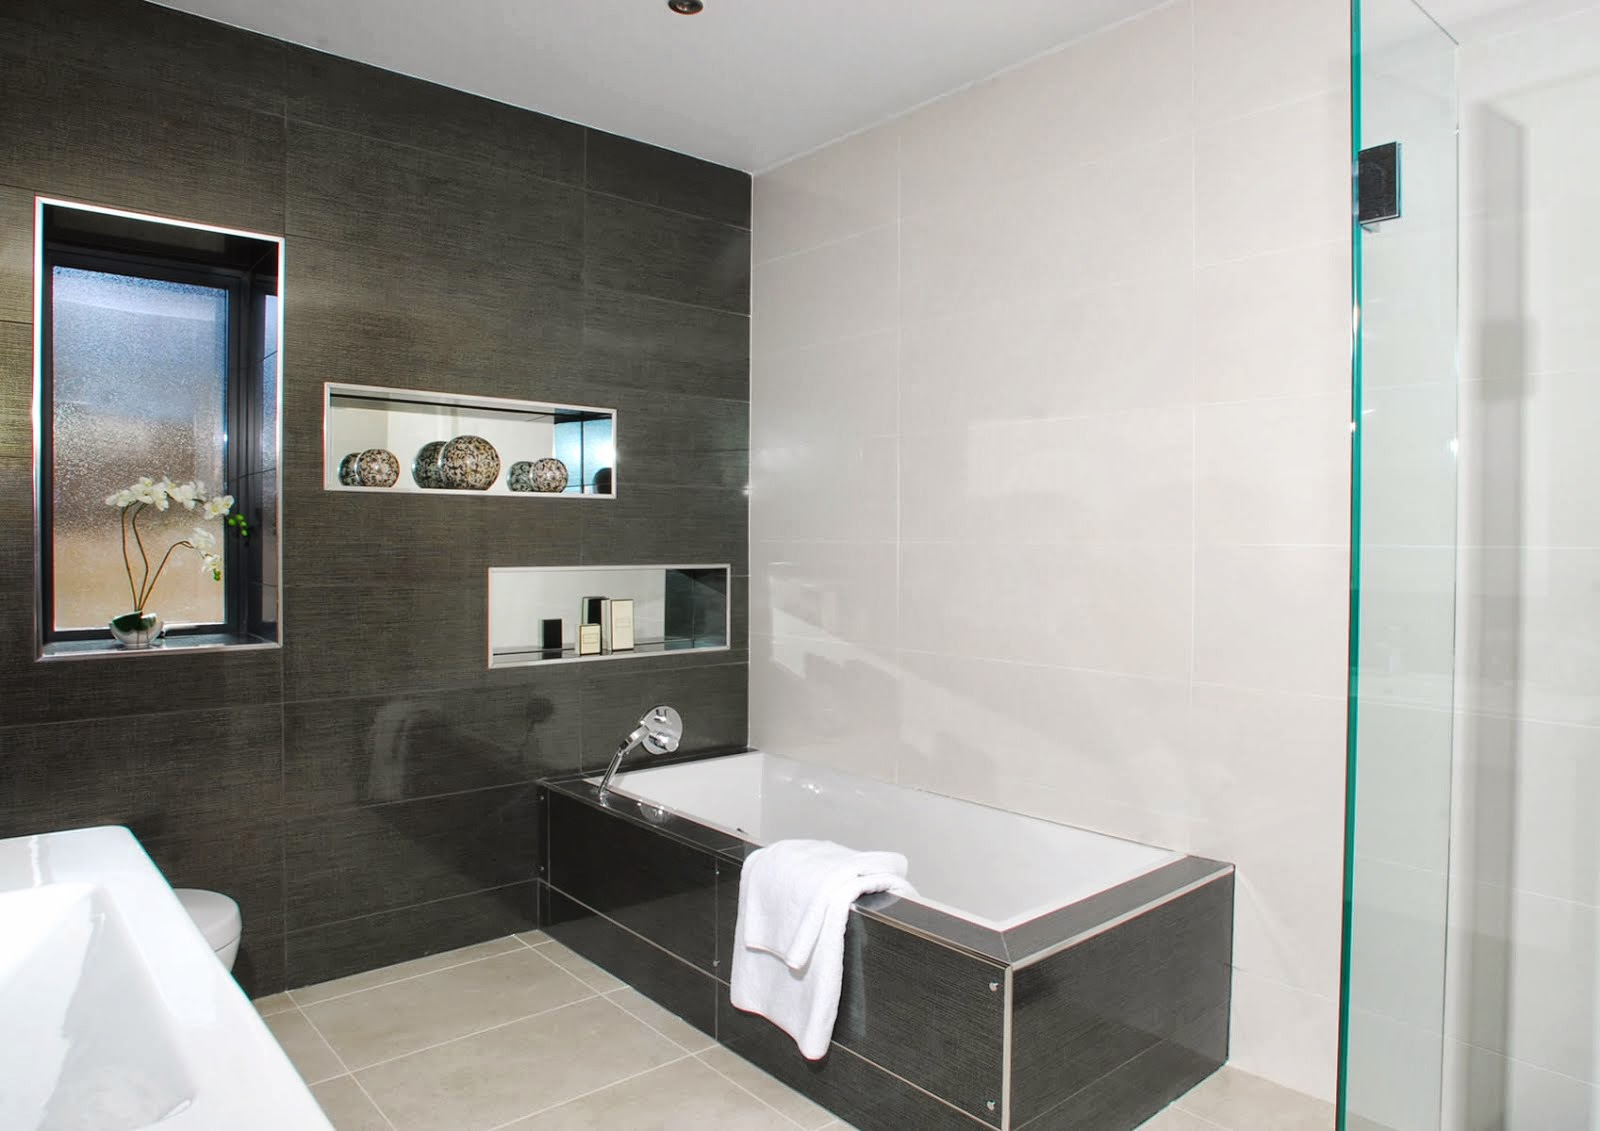 Bathroom design ideas uk B q bathroom design service